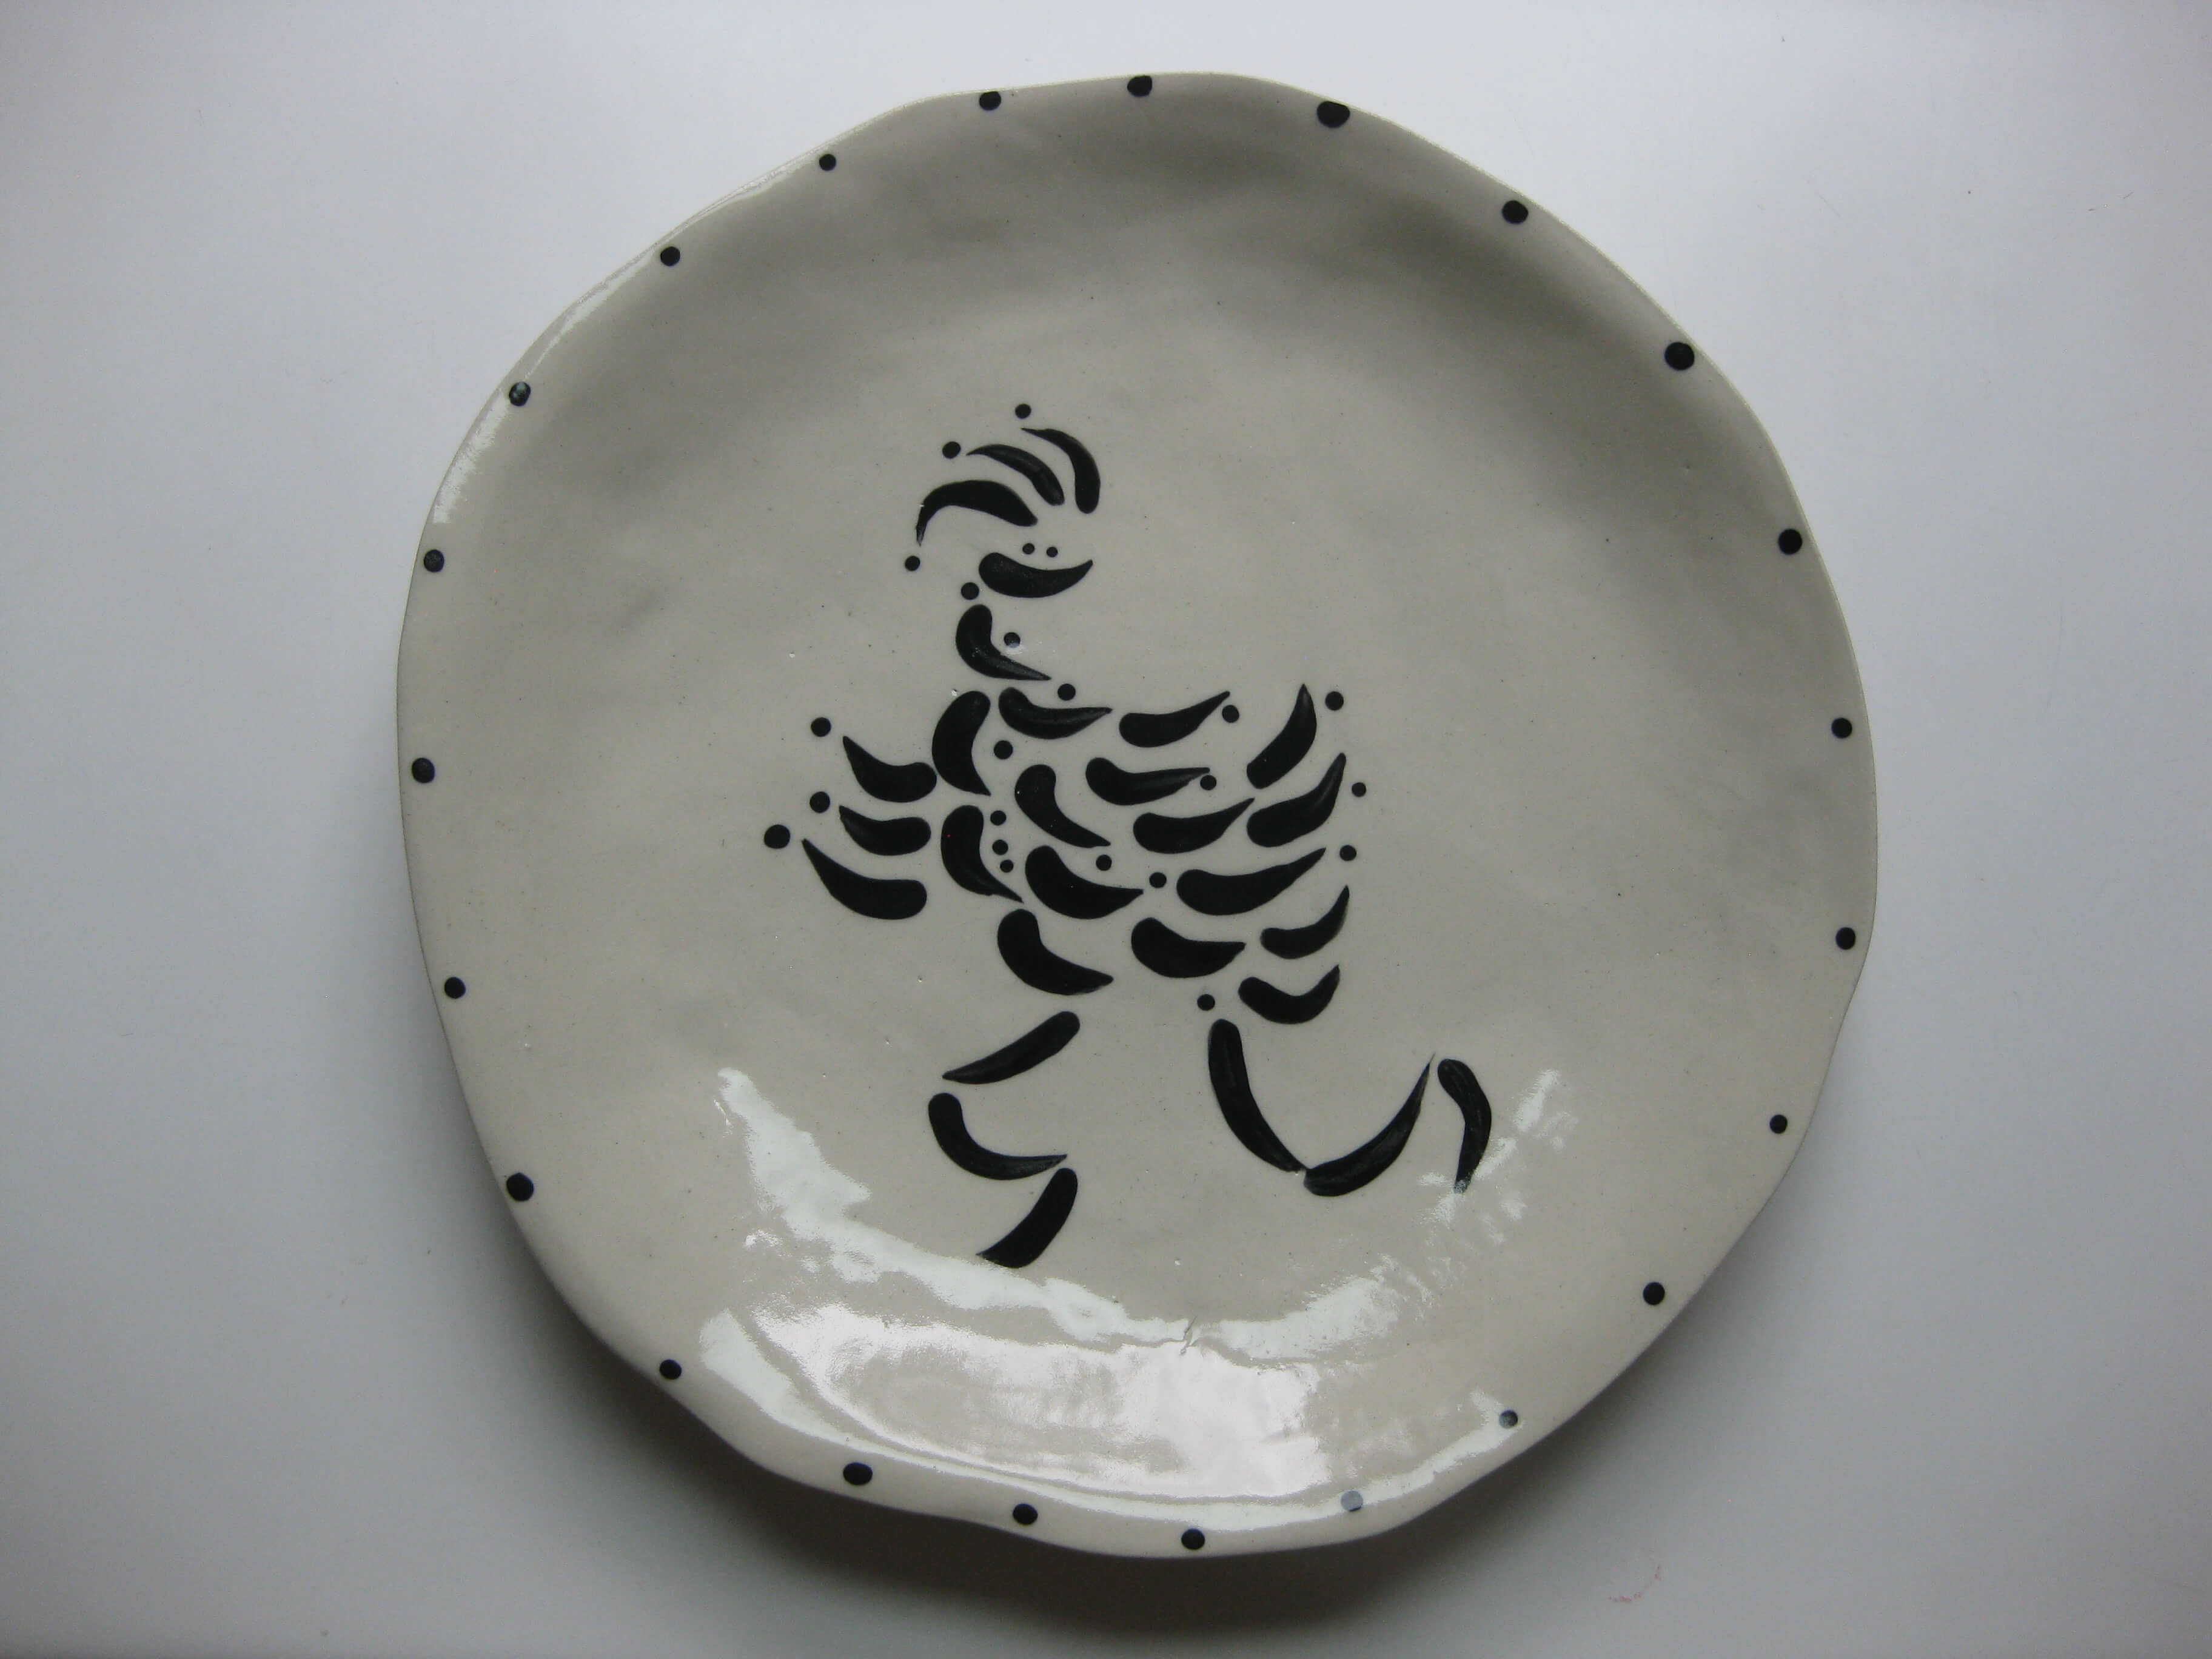 Crazy Chicks dinner plate